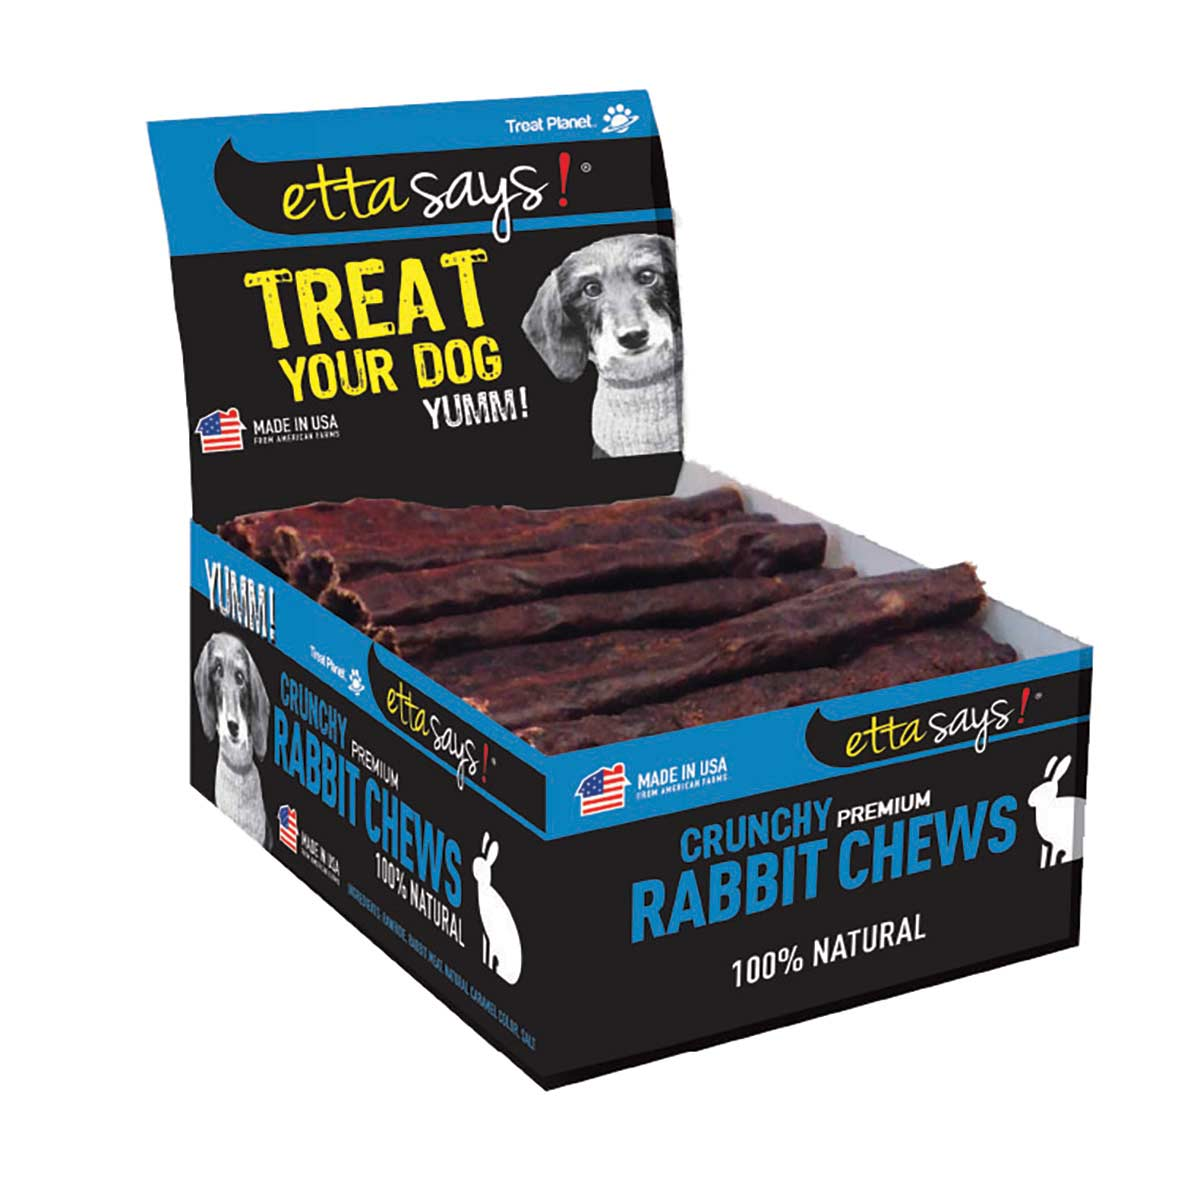 Display Box with Etta Says! Crunchy Rabbit Chews 36 Count